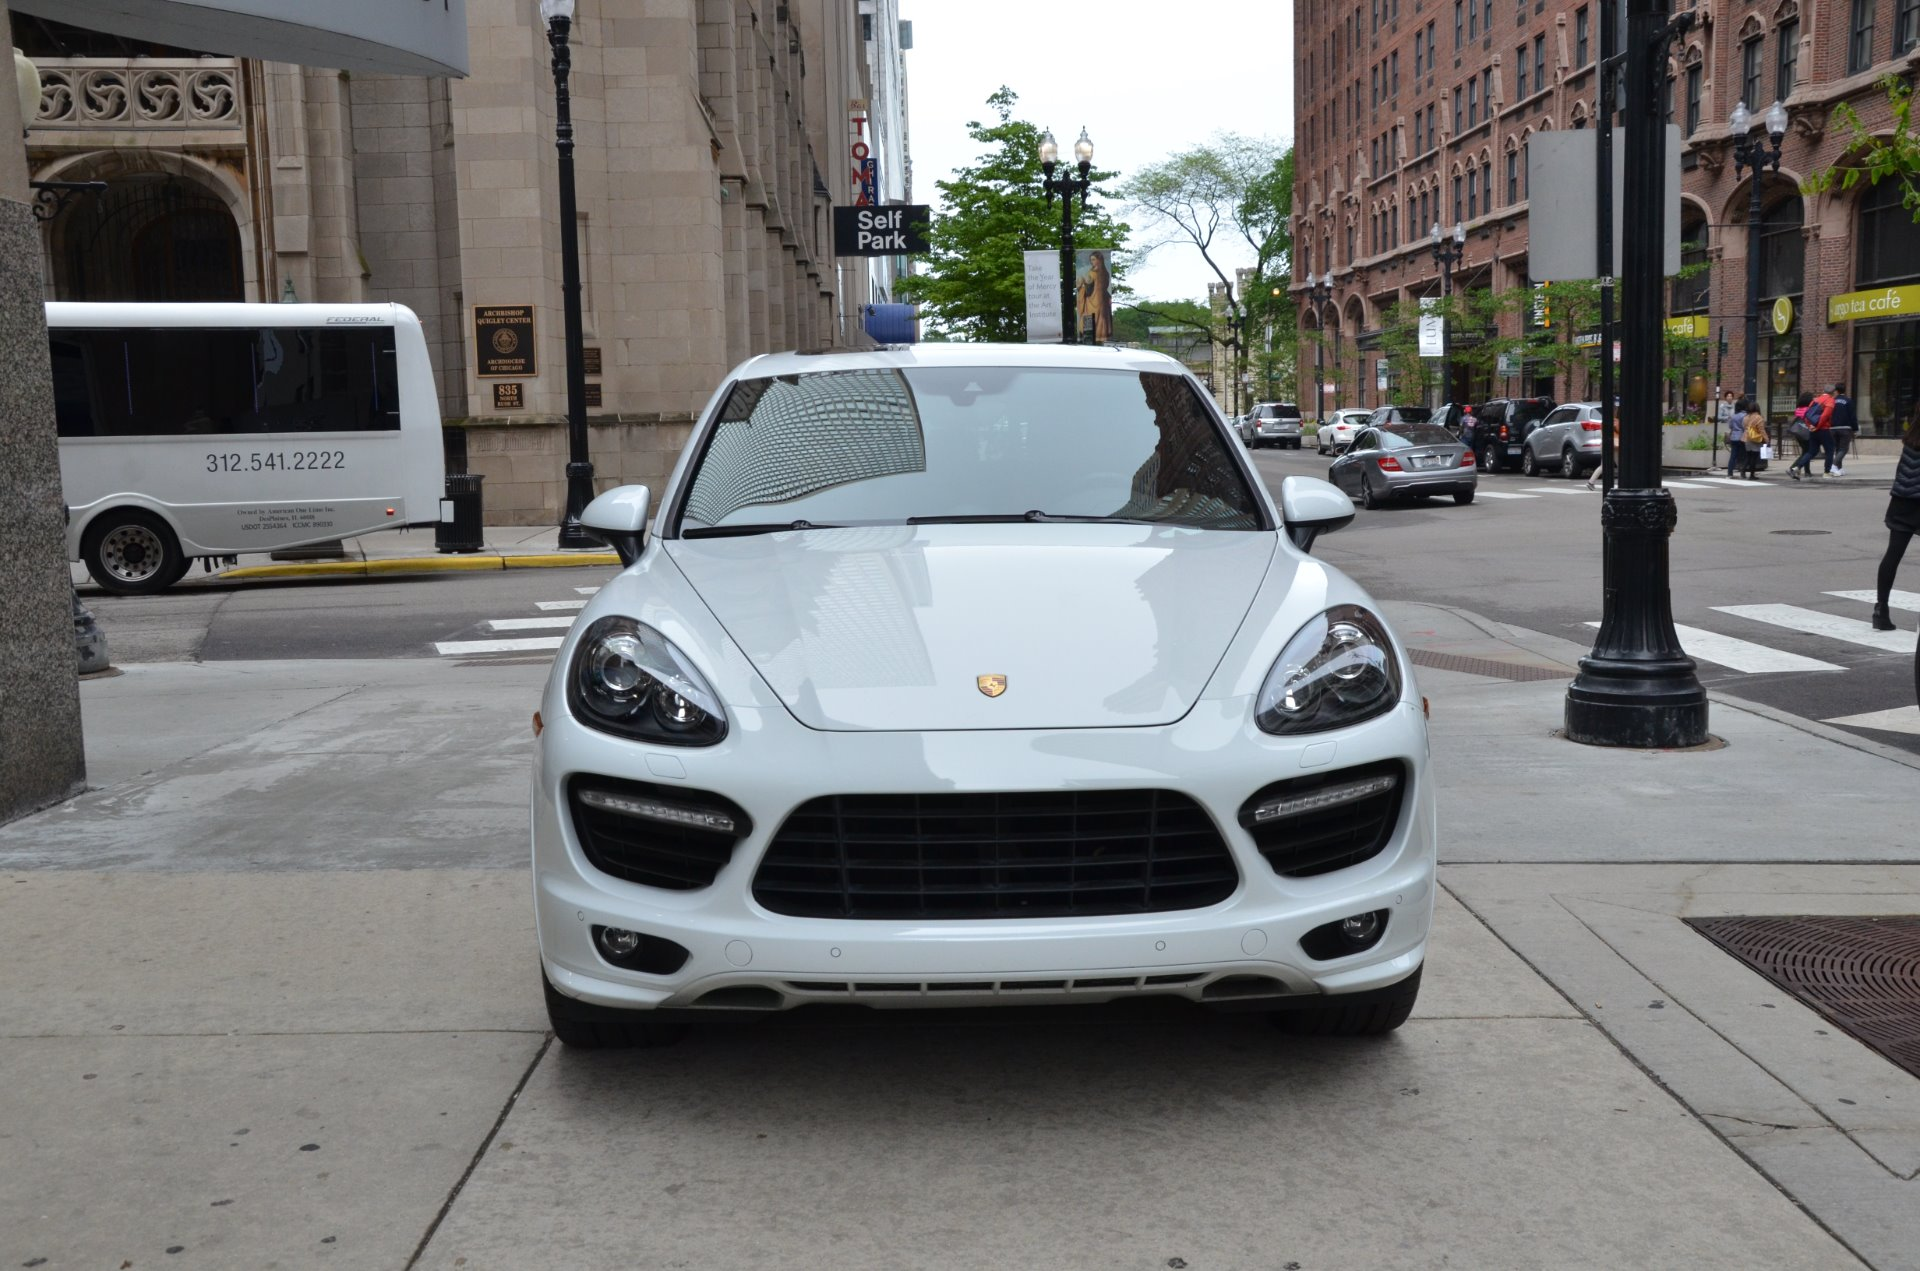 2014 porsche cayenne gts stock b909b for sale near chicago il il porsche dealer. Black Bedroom Furniture Sets. Home Design Ideas